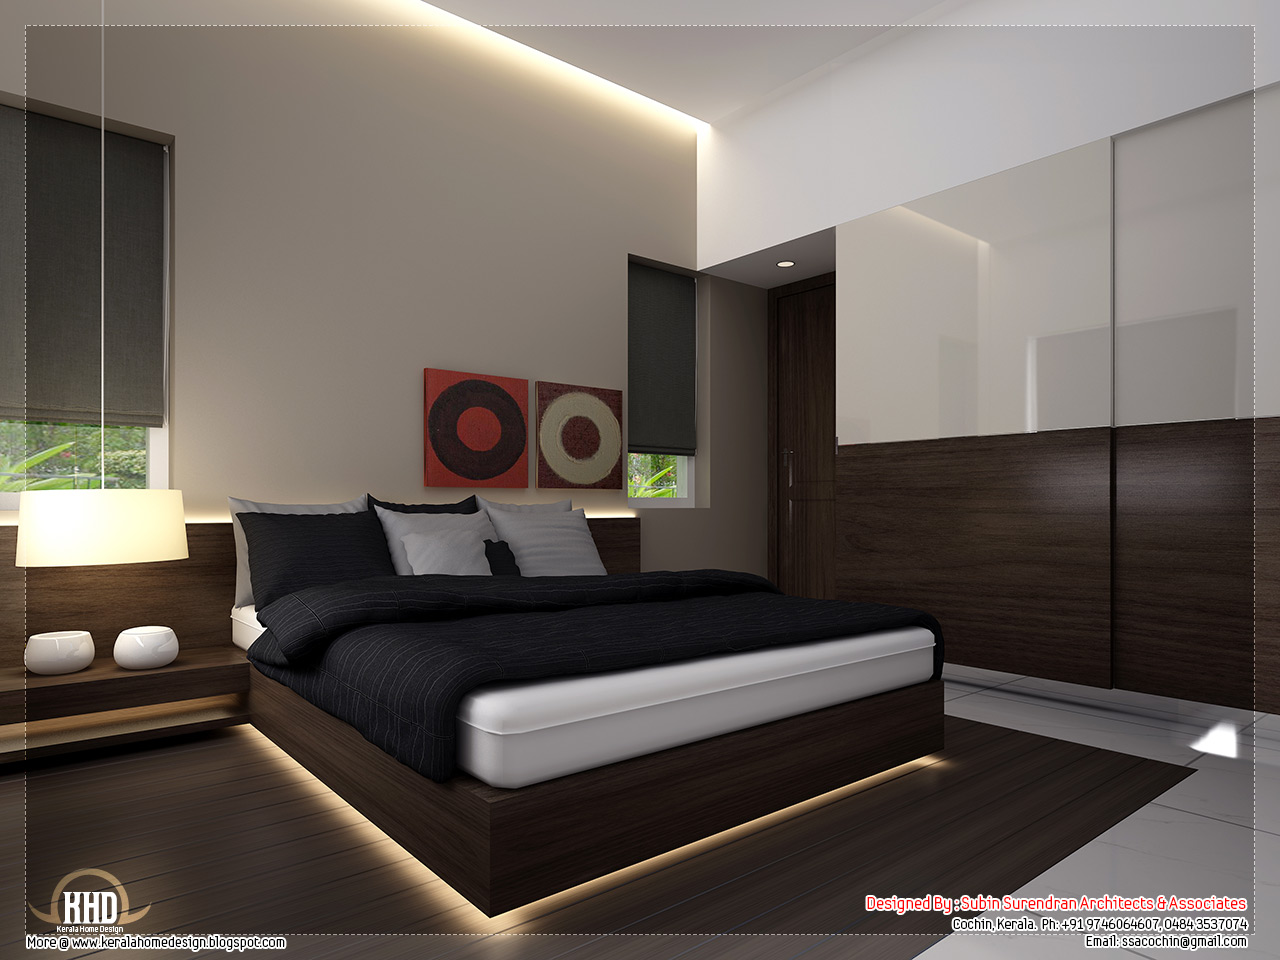 Beautiful home interior designs kerala home design and floor plans - Interior design of home ...